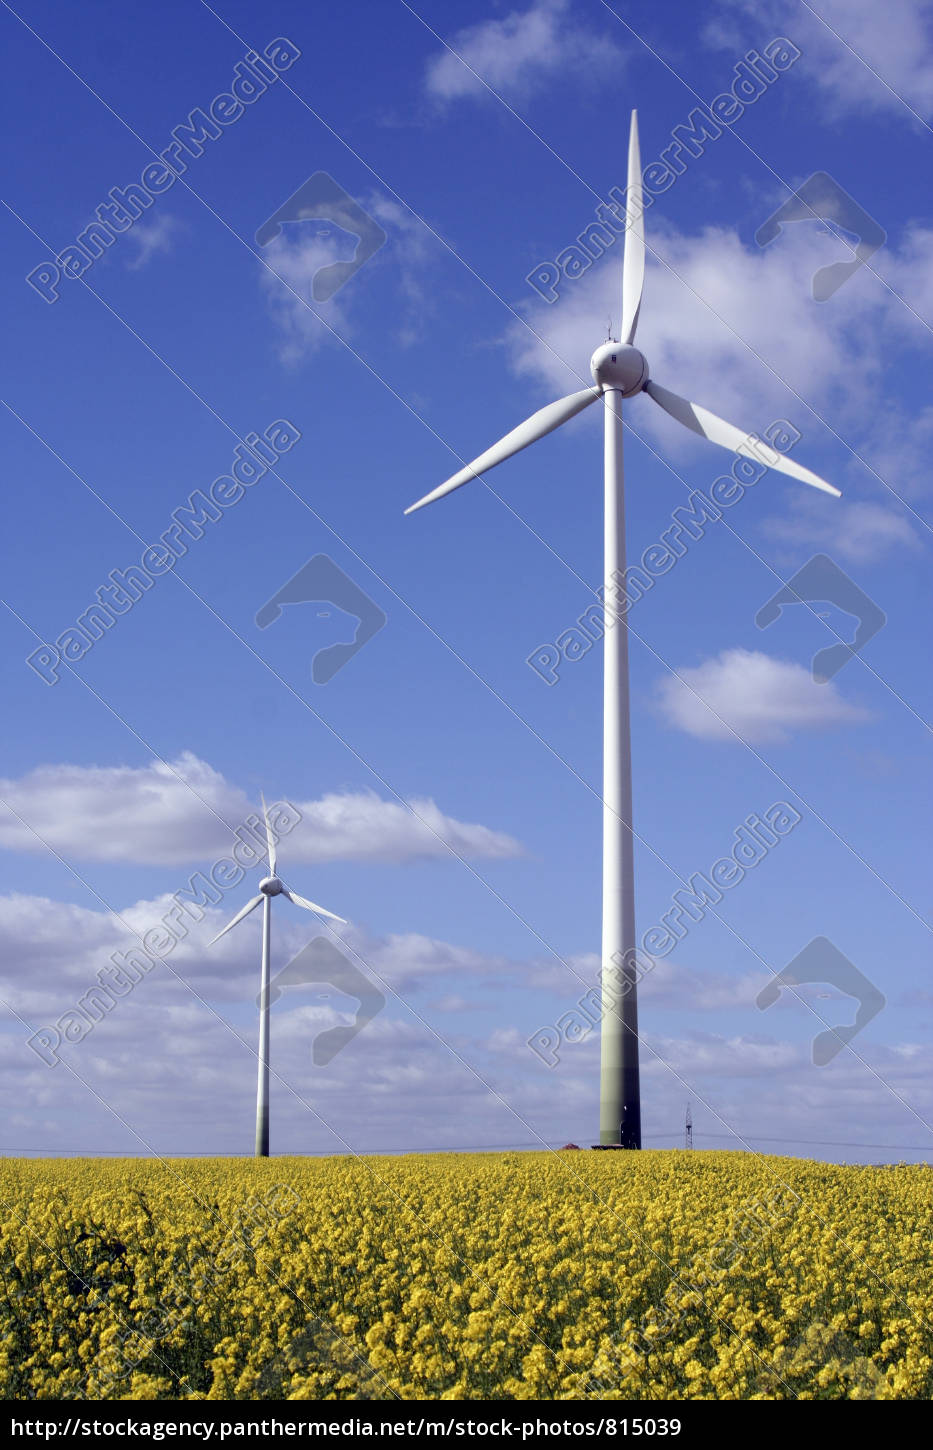 canola, field, with, wind, turbine - 815039